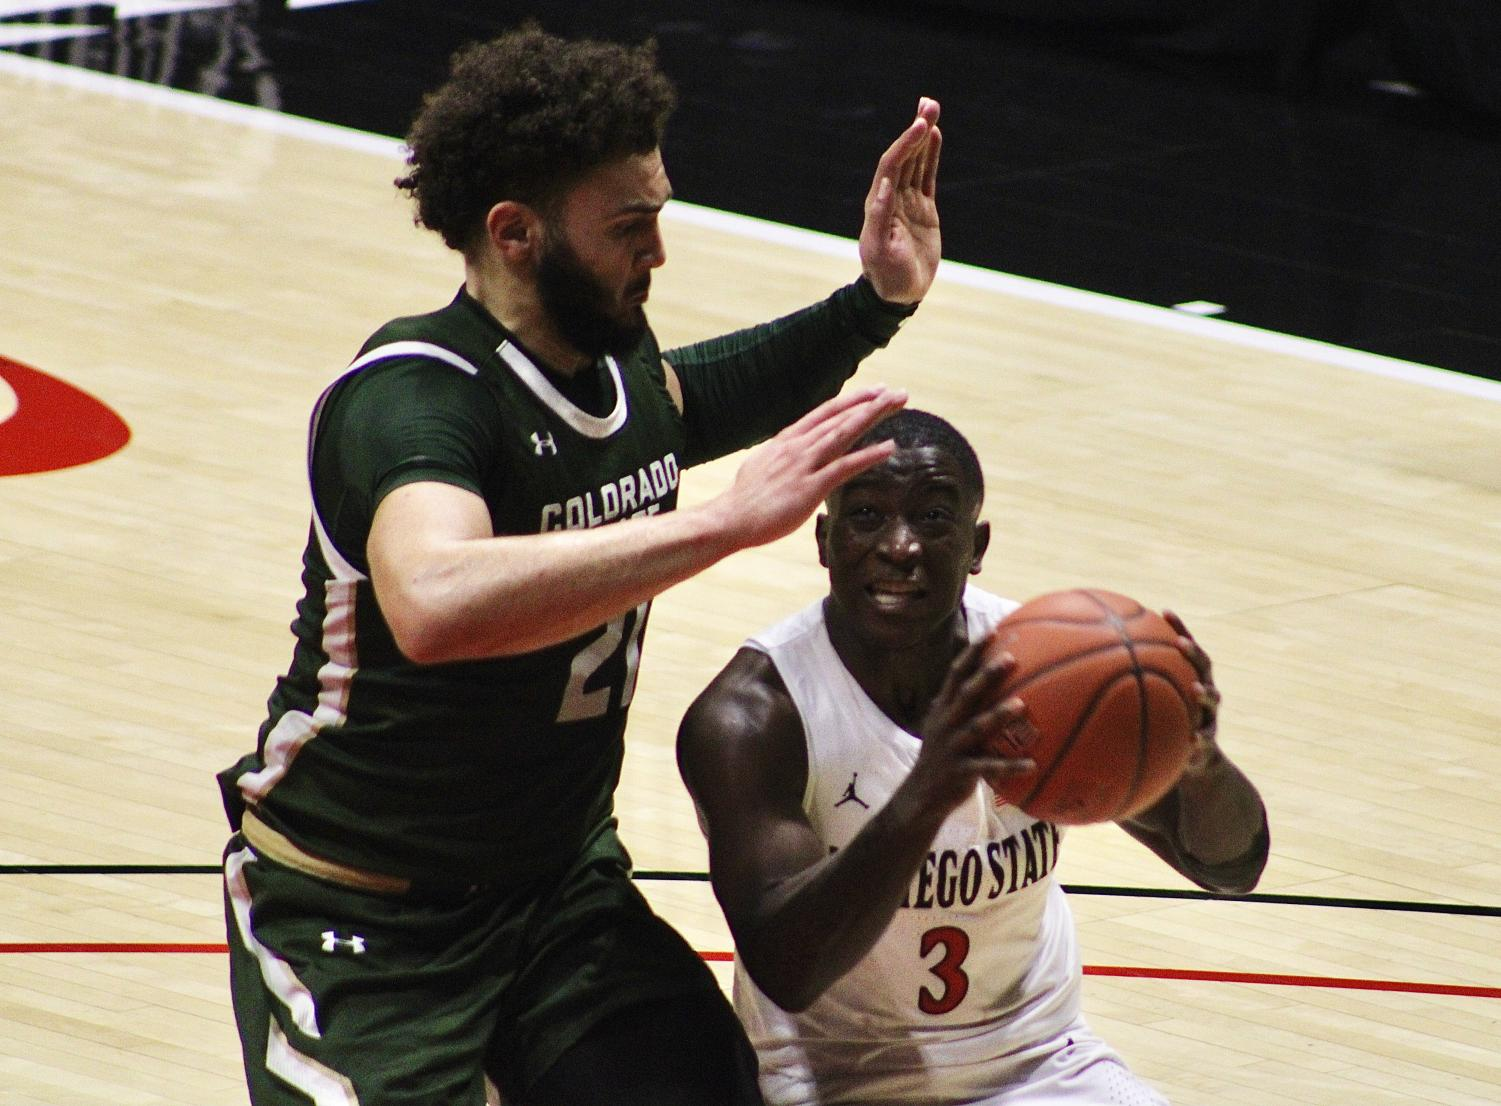 Senior guard Terrell Gomez looks to attempt a shot against Colorado State sophomore forward David Roddy during the Aztecs